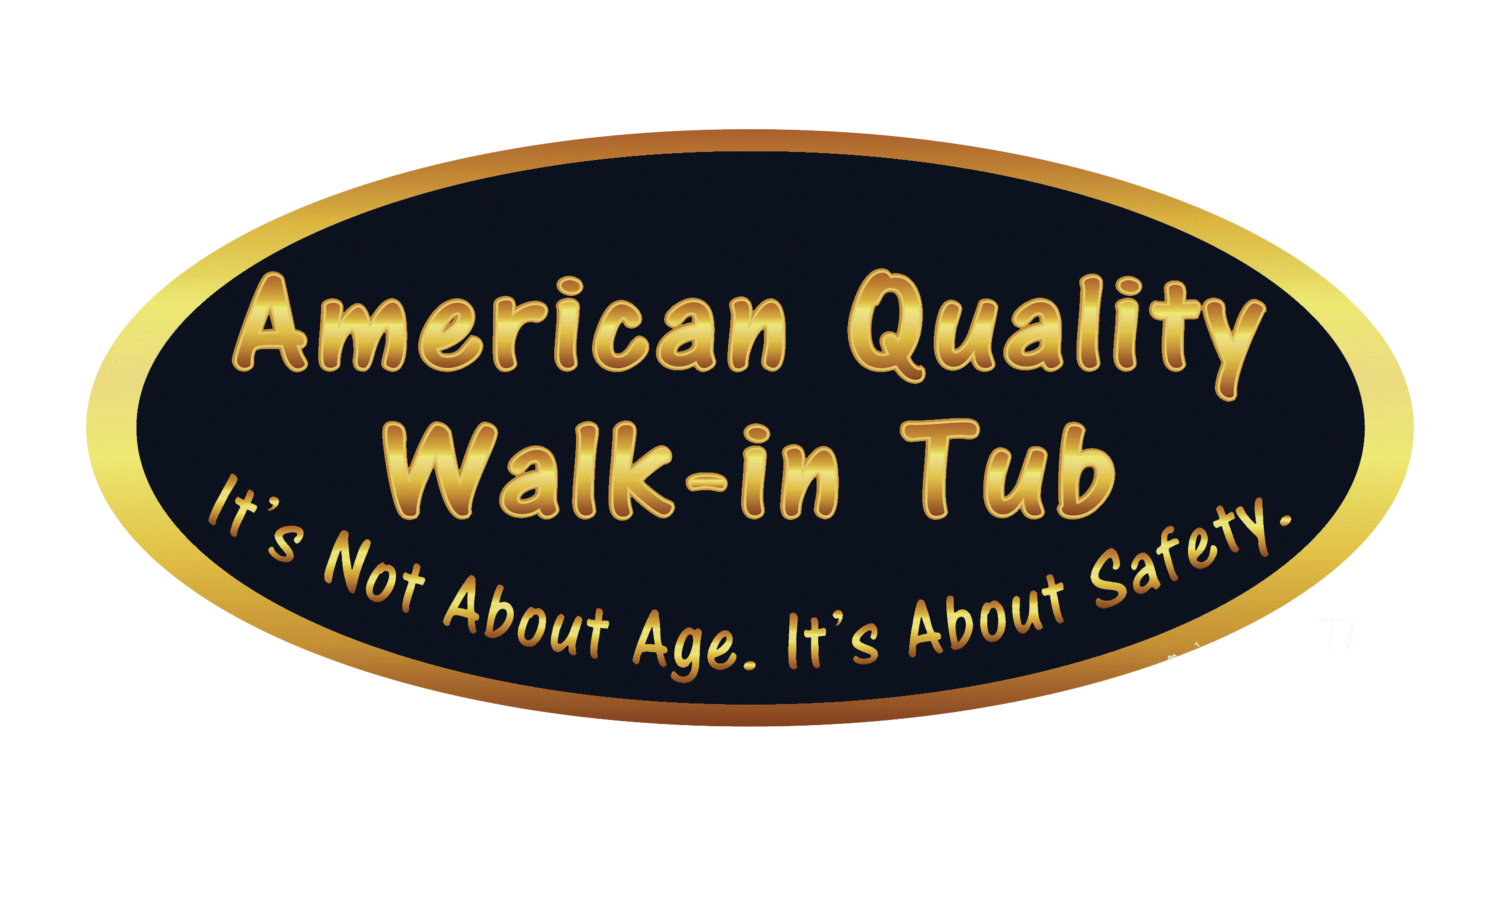 American Quality Walk-In Tub